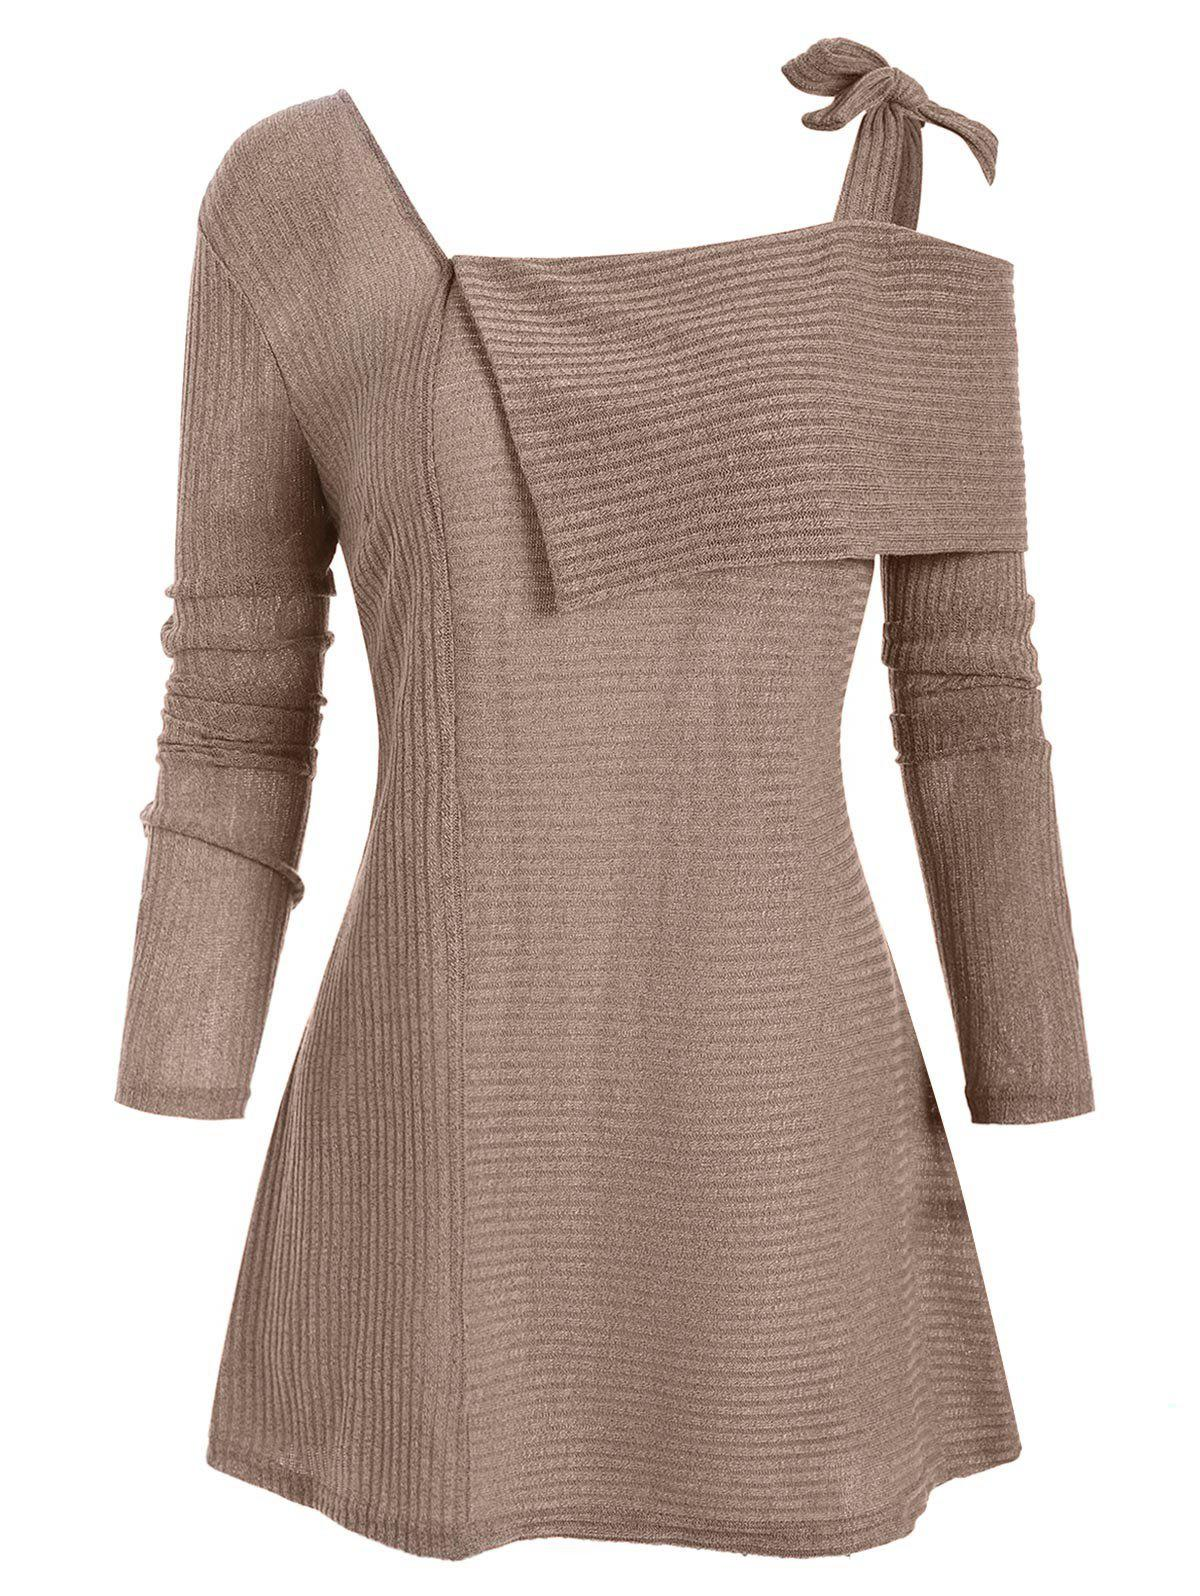 Tie Ribbed Folded Plus Size Knitwear - TAN L